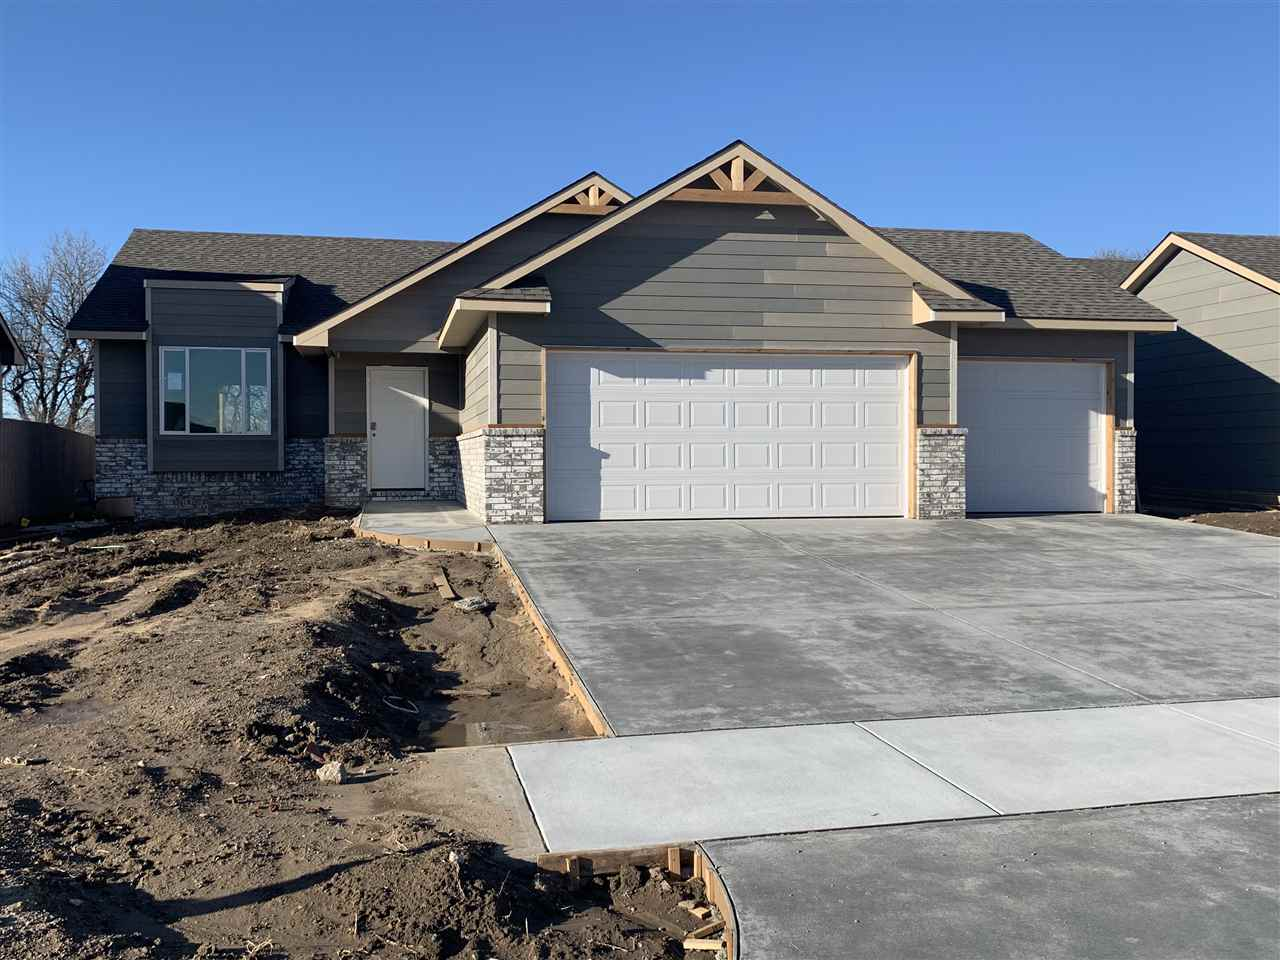 Welcome home! This 4 bedroom, 3 bathroom home, with kitchen island, full finished basement, 3 car ga